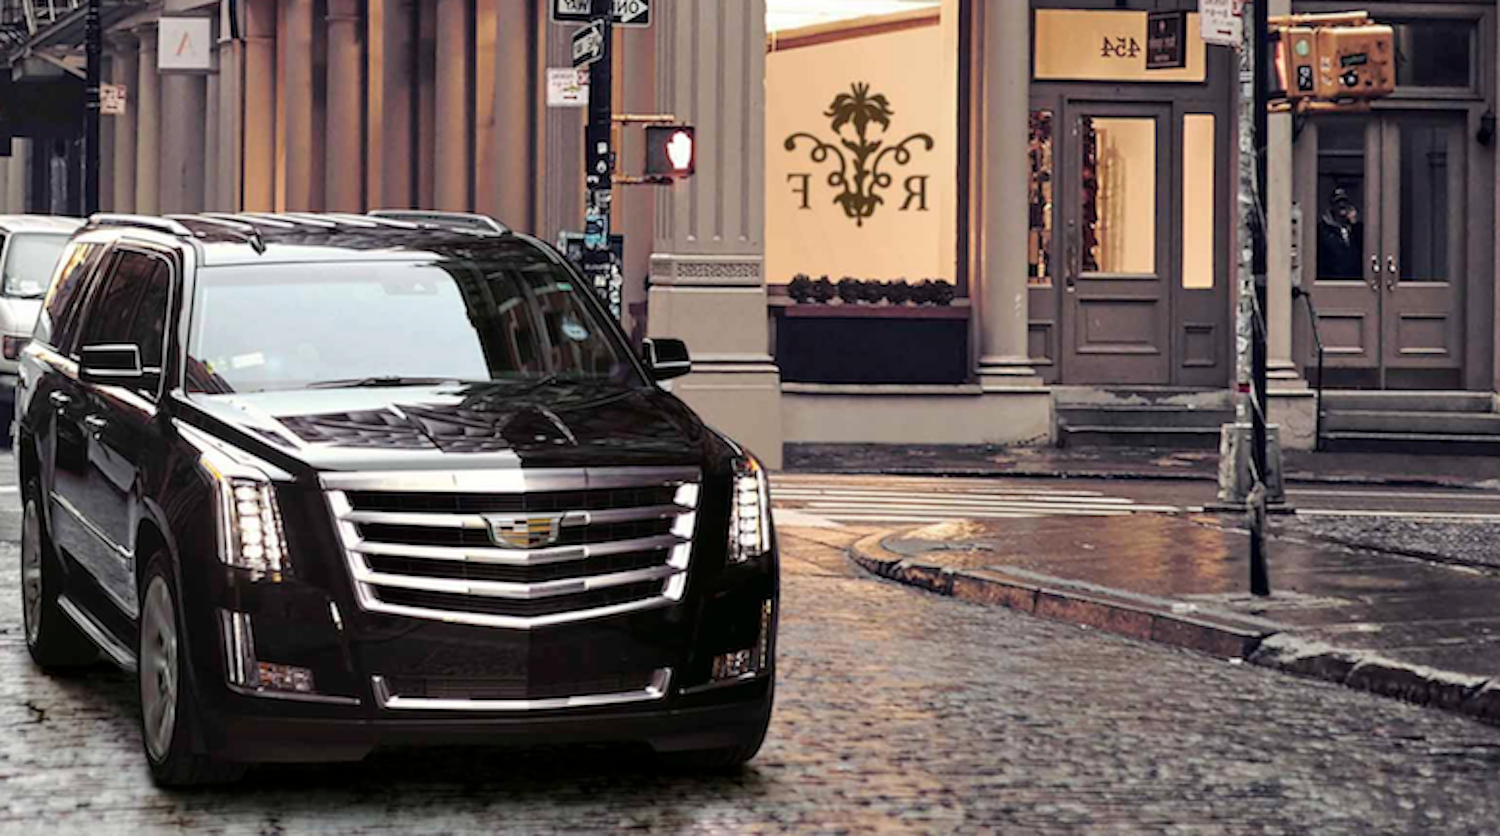 Rent Cadillac Esclade Luxury SUV From Exotic-Luxury-Rental.com